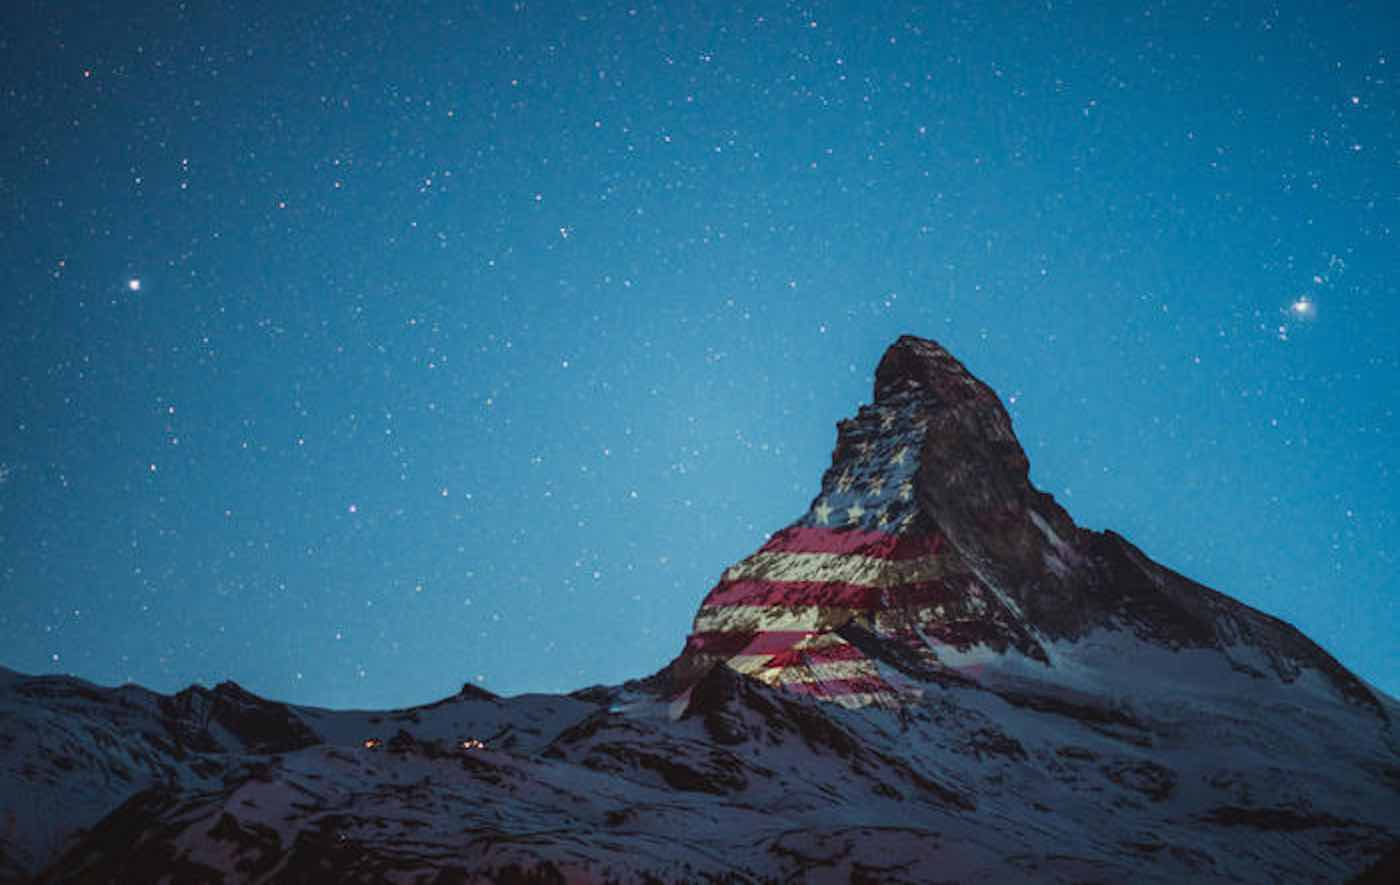 Artist Projects American Flag onto Swiss Alps: 'God Bless America'